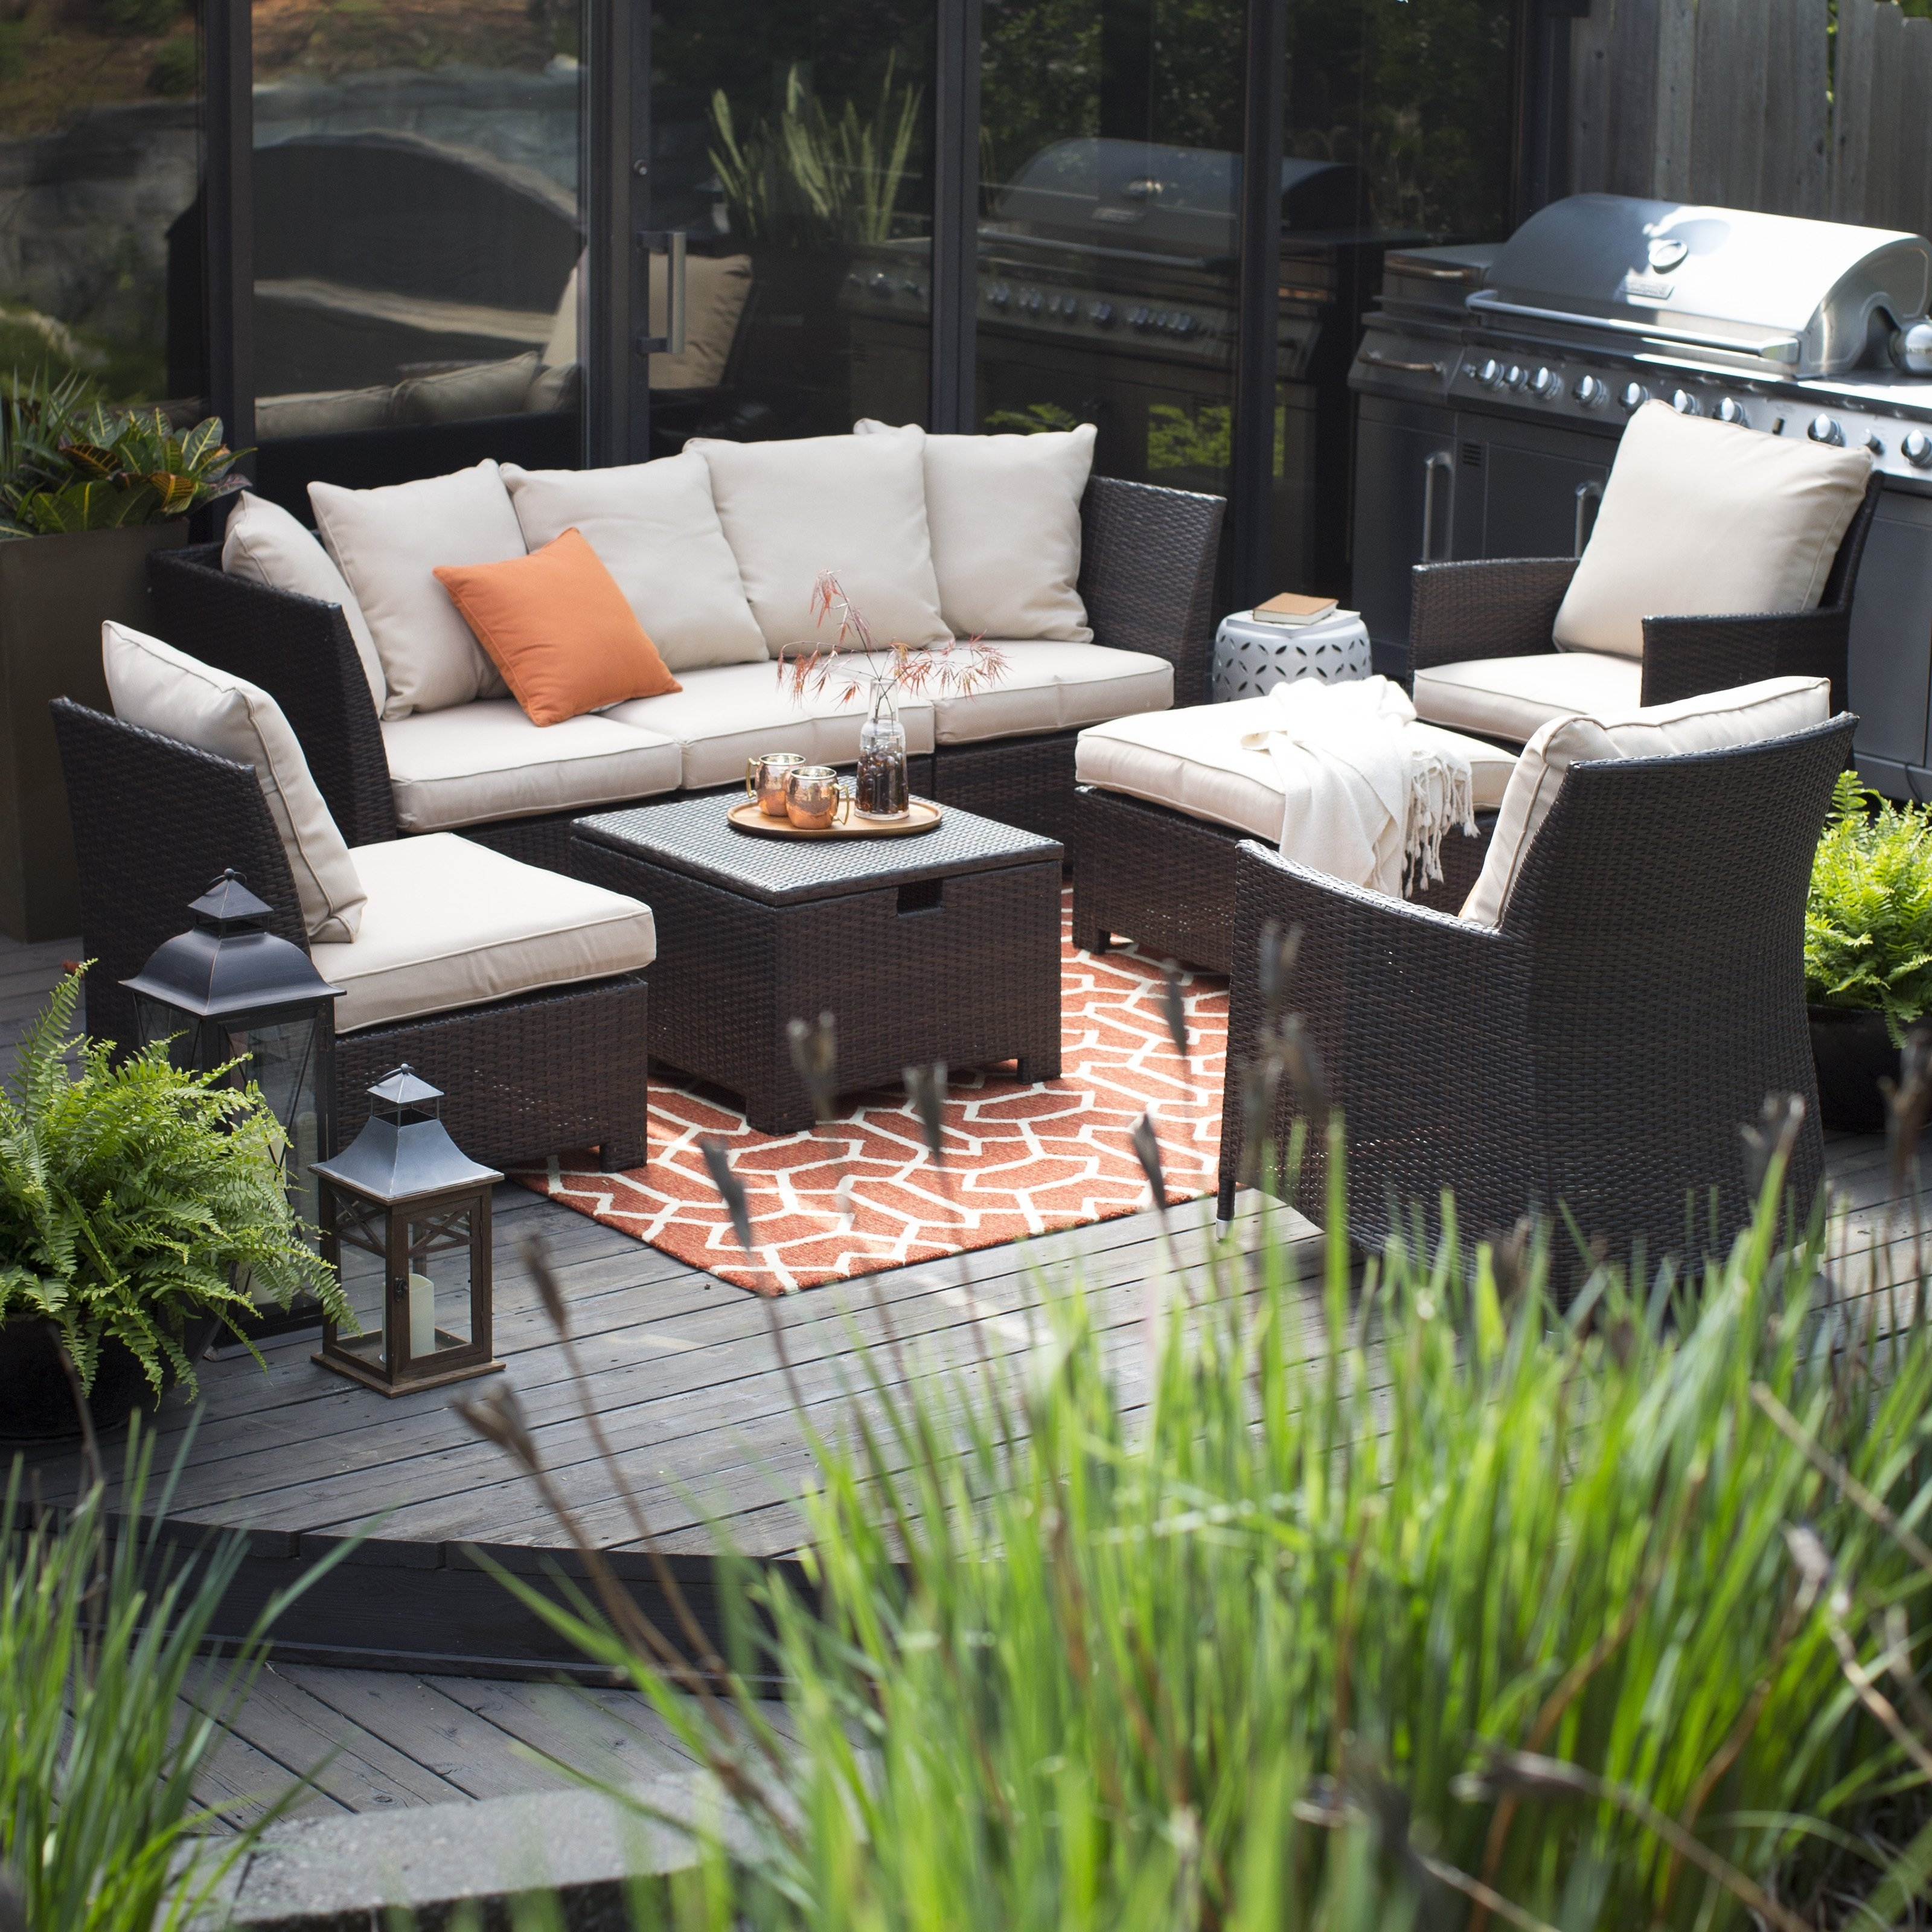 Preferred Furniture: Appealing Dark Wicker Sofa With White Cushions And Wicker With Patio Conversation Sets With Ottoman (View 17 of 20)